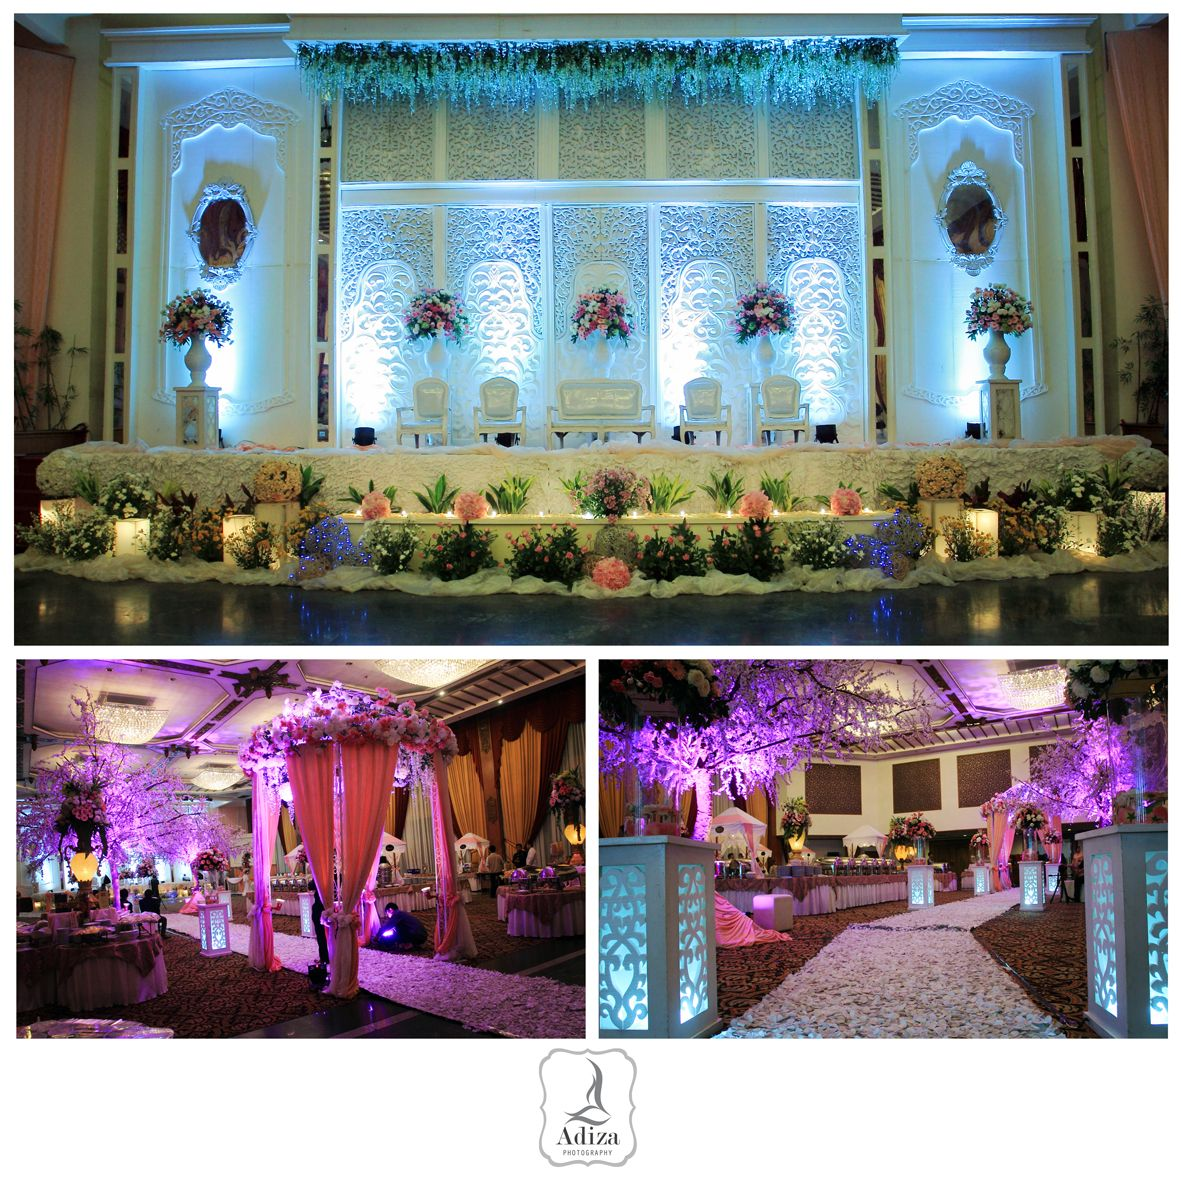 Indonesian wedding decoration decorator garda dekorasi indonesian wedding decoration decorator garda dekorasi junglespirit Gallery